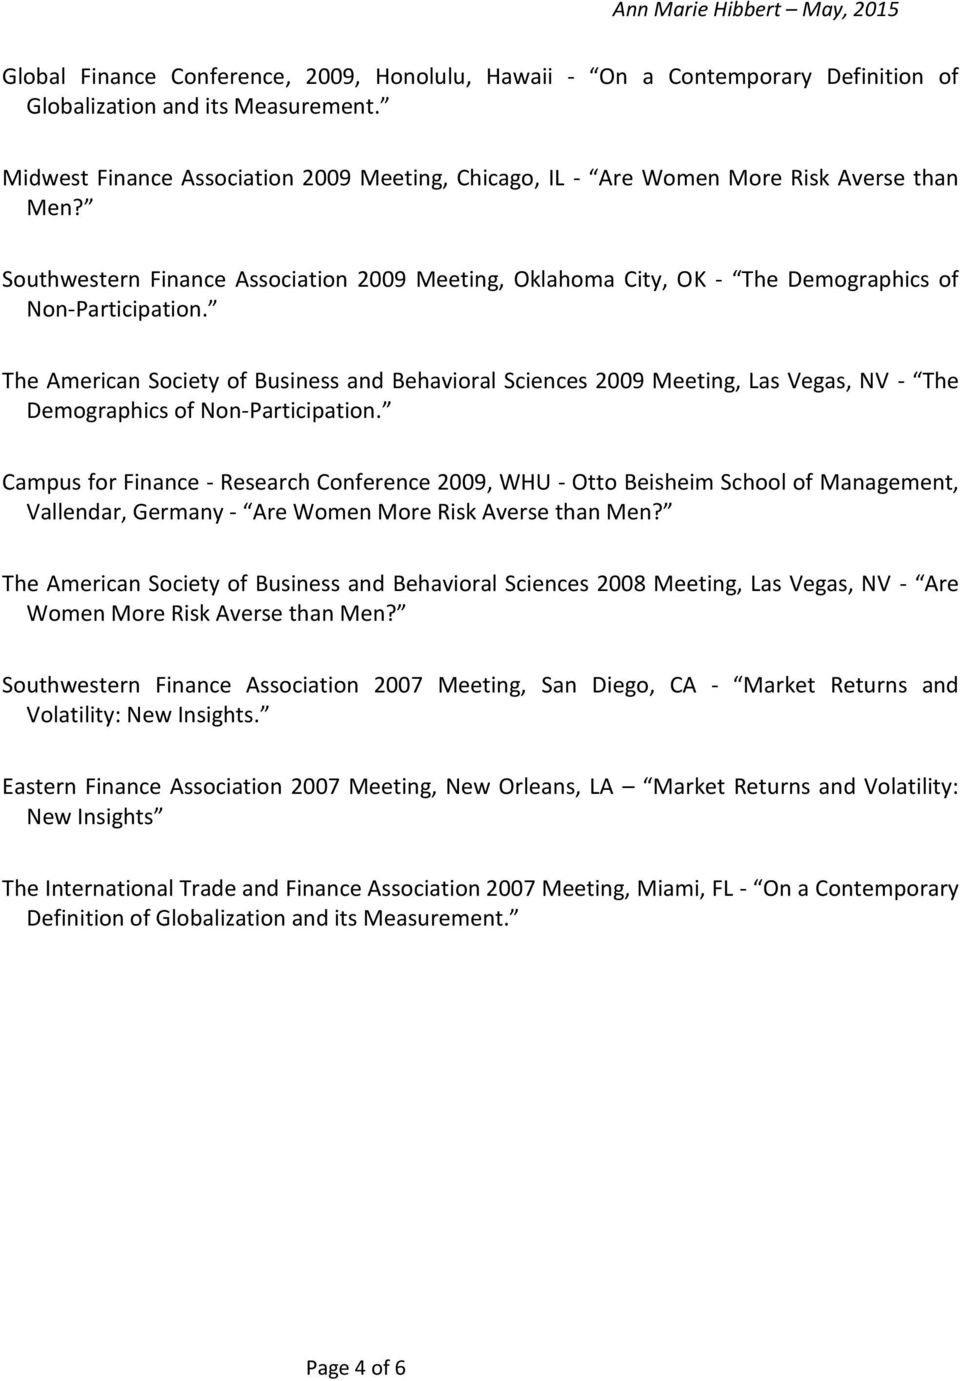 The American Society of Business and Behavioral Sciences 2009 Meeting, Las Vegas, NV - The Demographics of Non-Participation.